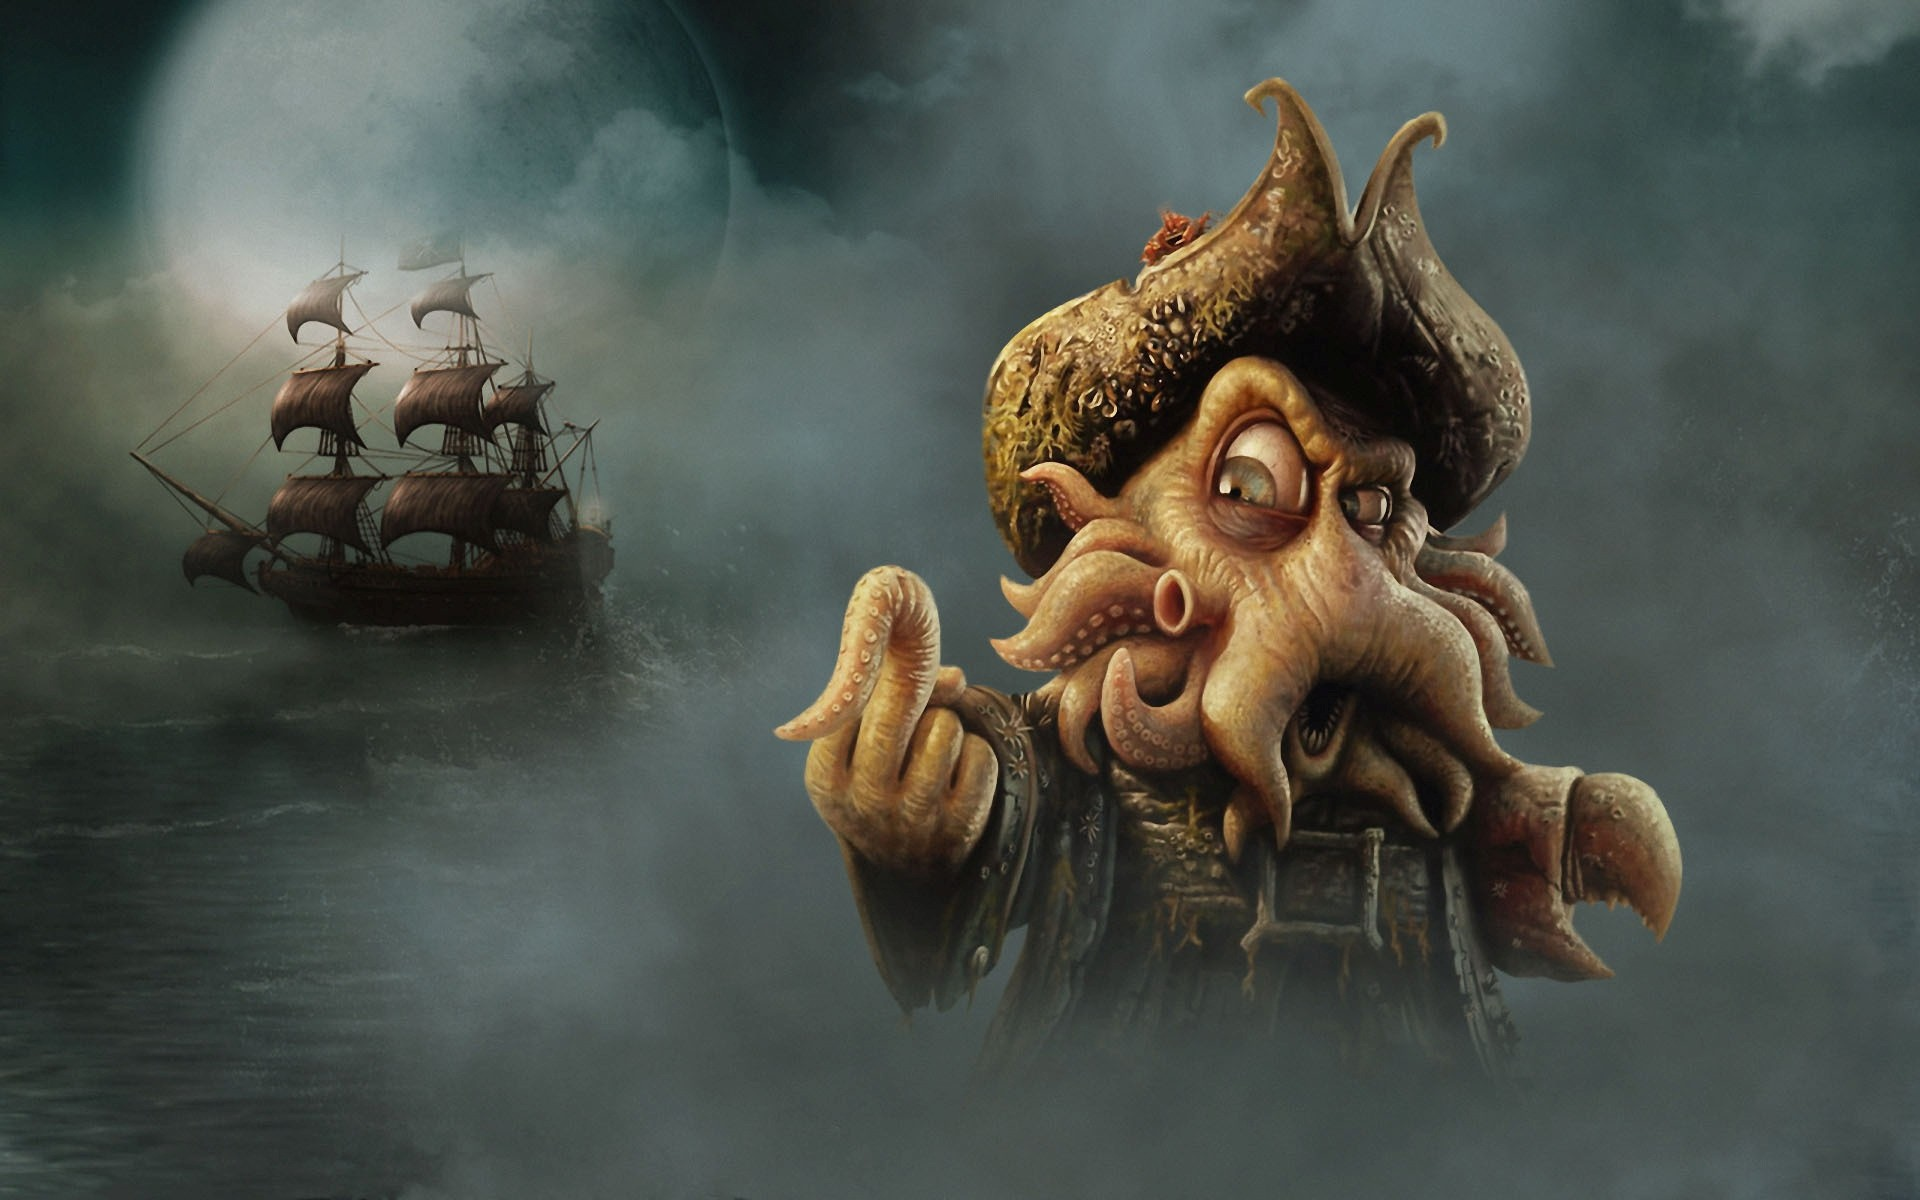 Pirates Of The Caribbean Wallpaper - Pirate Of The Caribbean Monsters , HD Wallpaper & Backgrounds